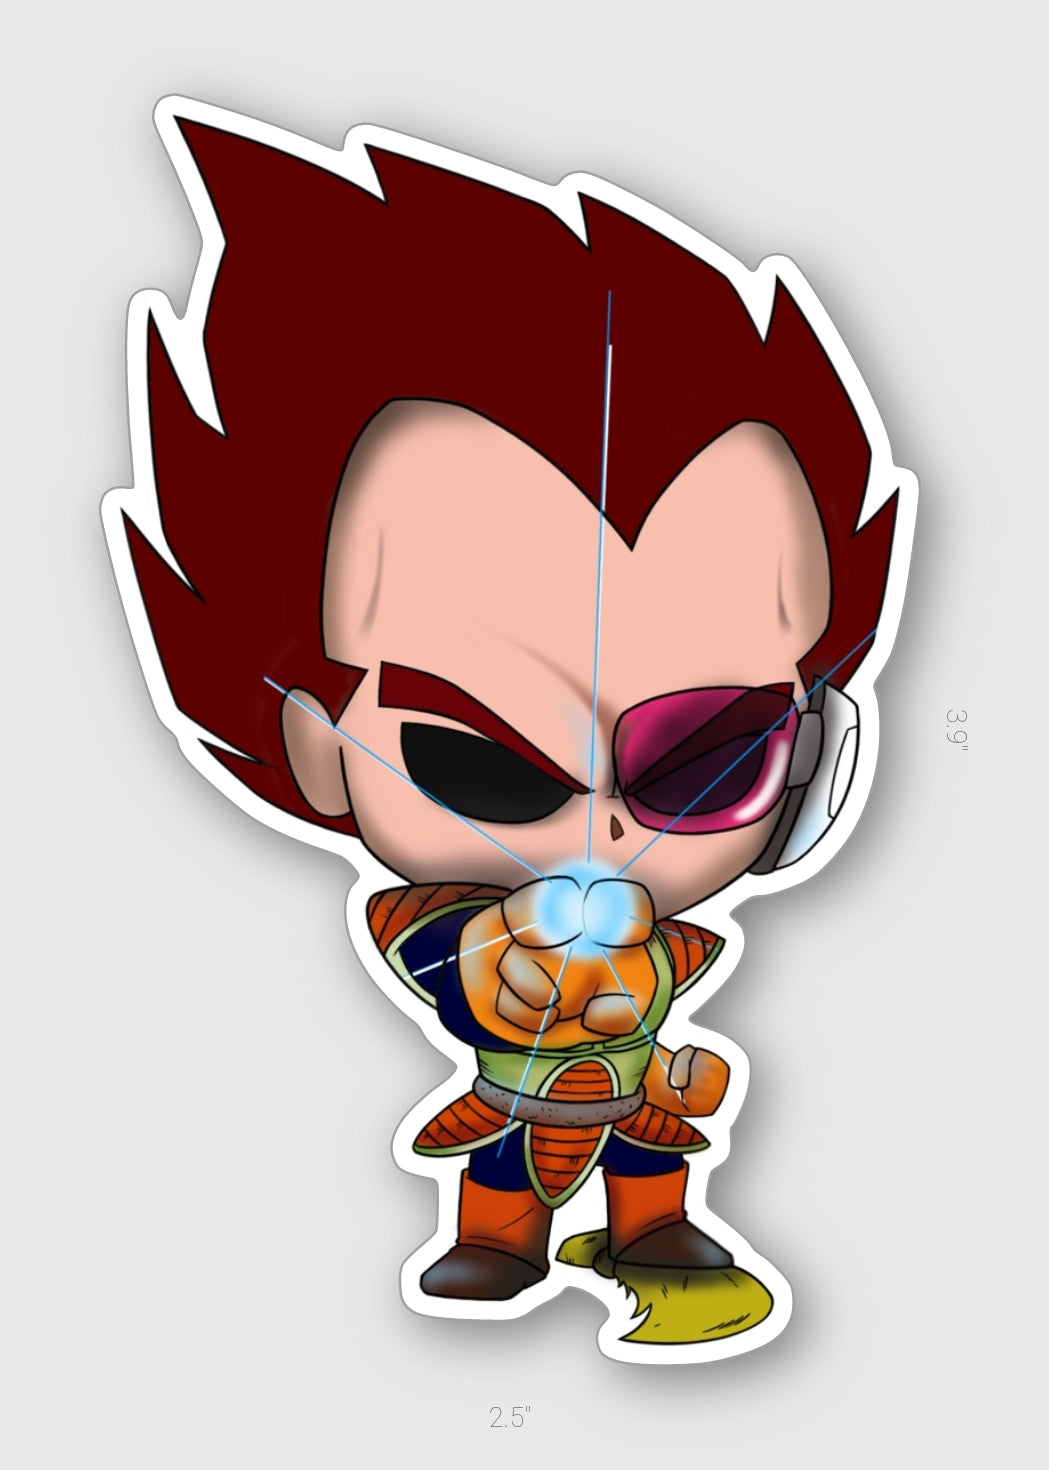 PA VEGETA - VINYL STICKER